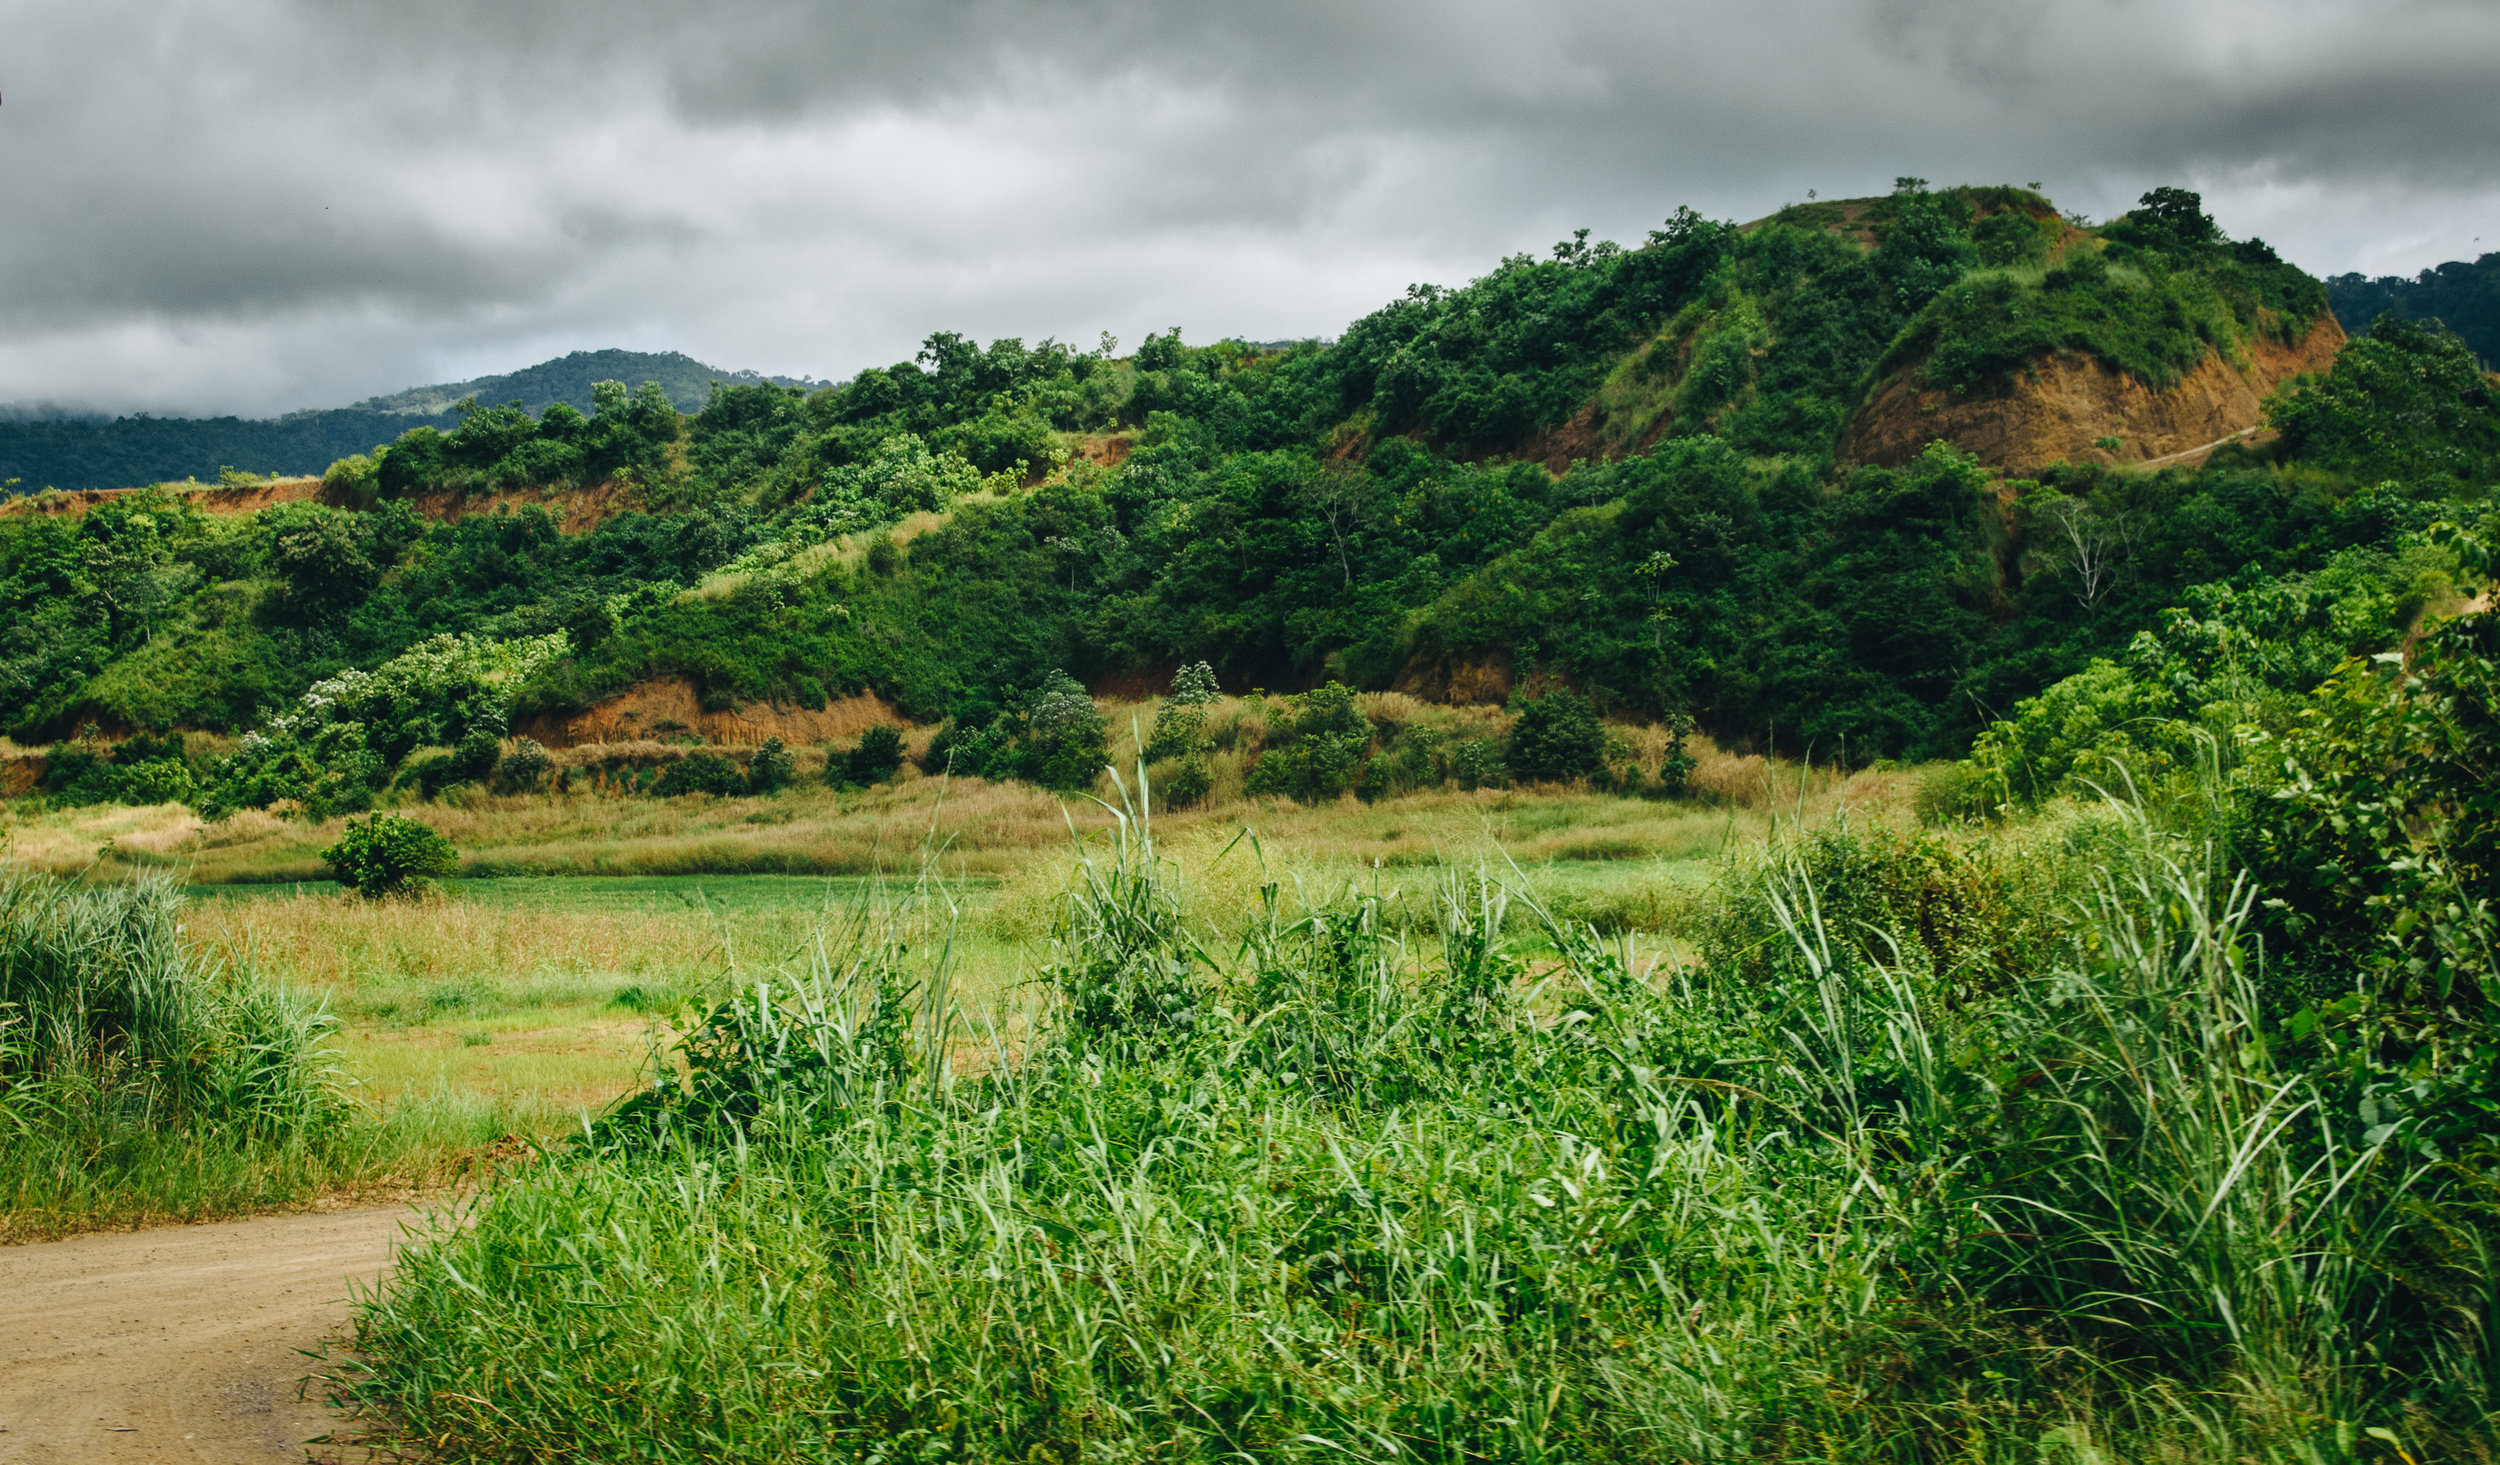 The rural landscape of Guanacaste is so lush but arid as well. How interesting.